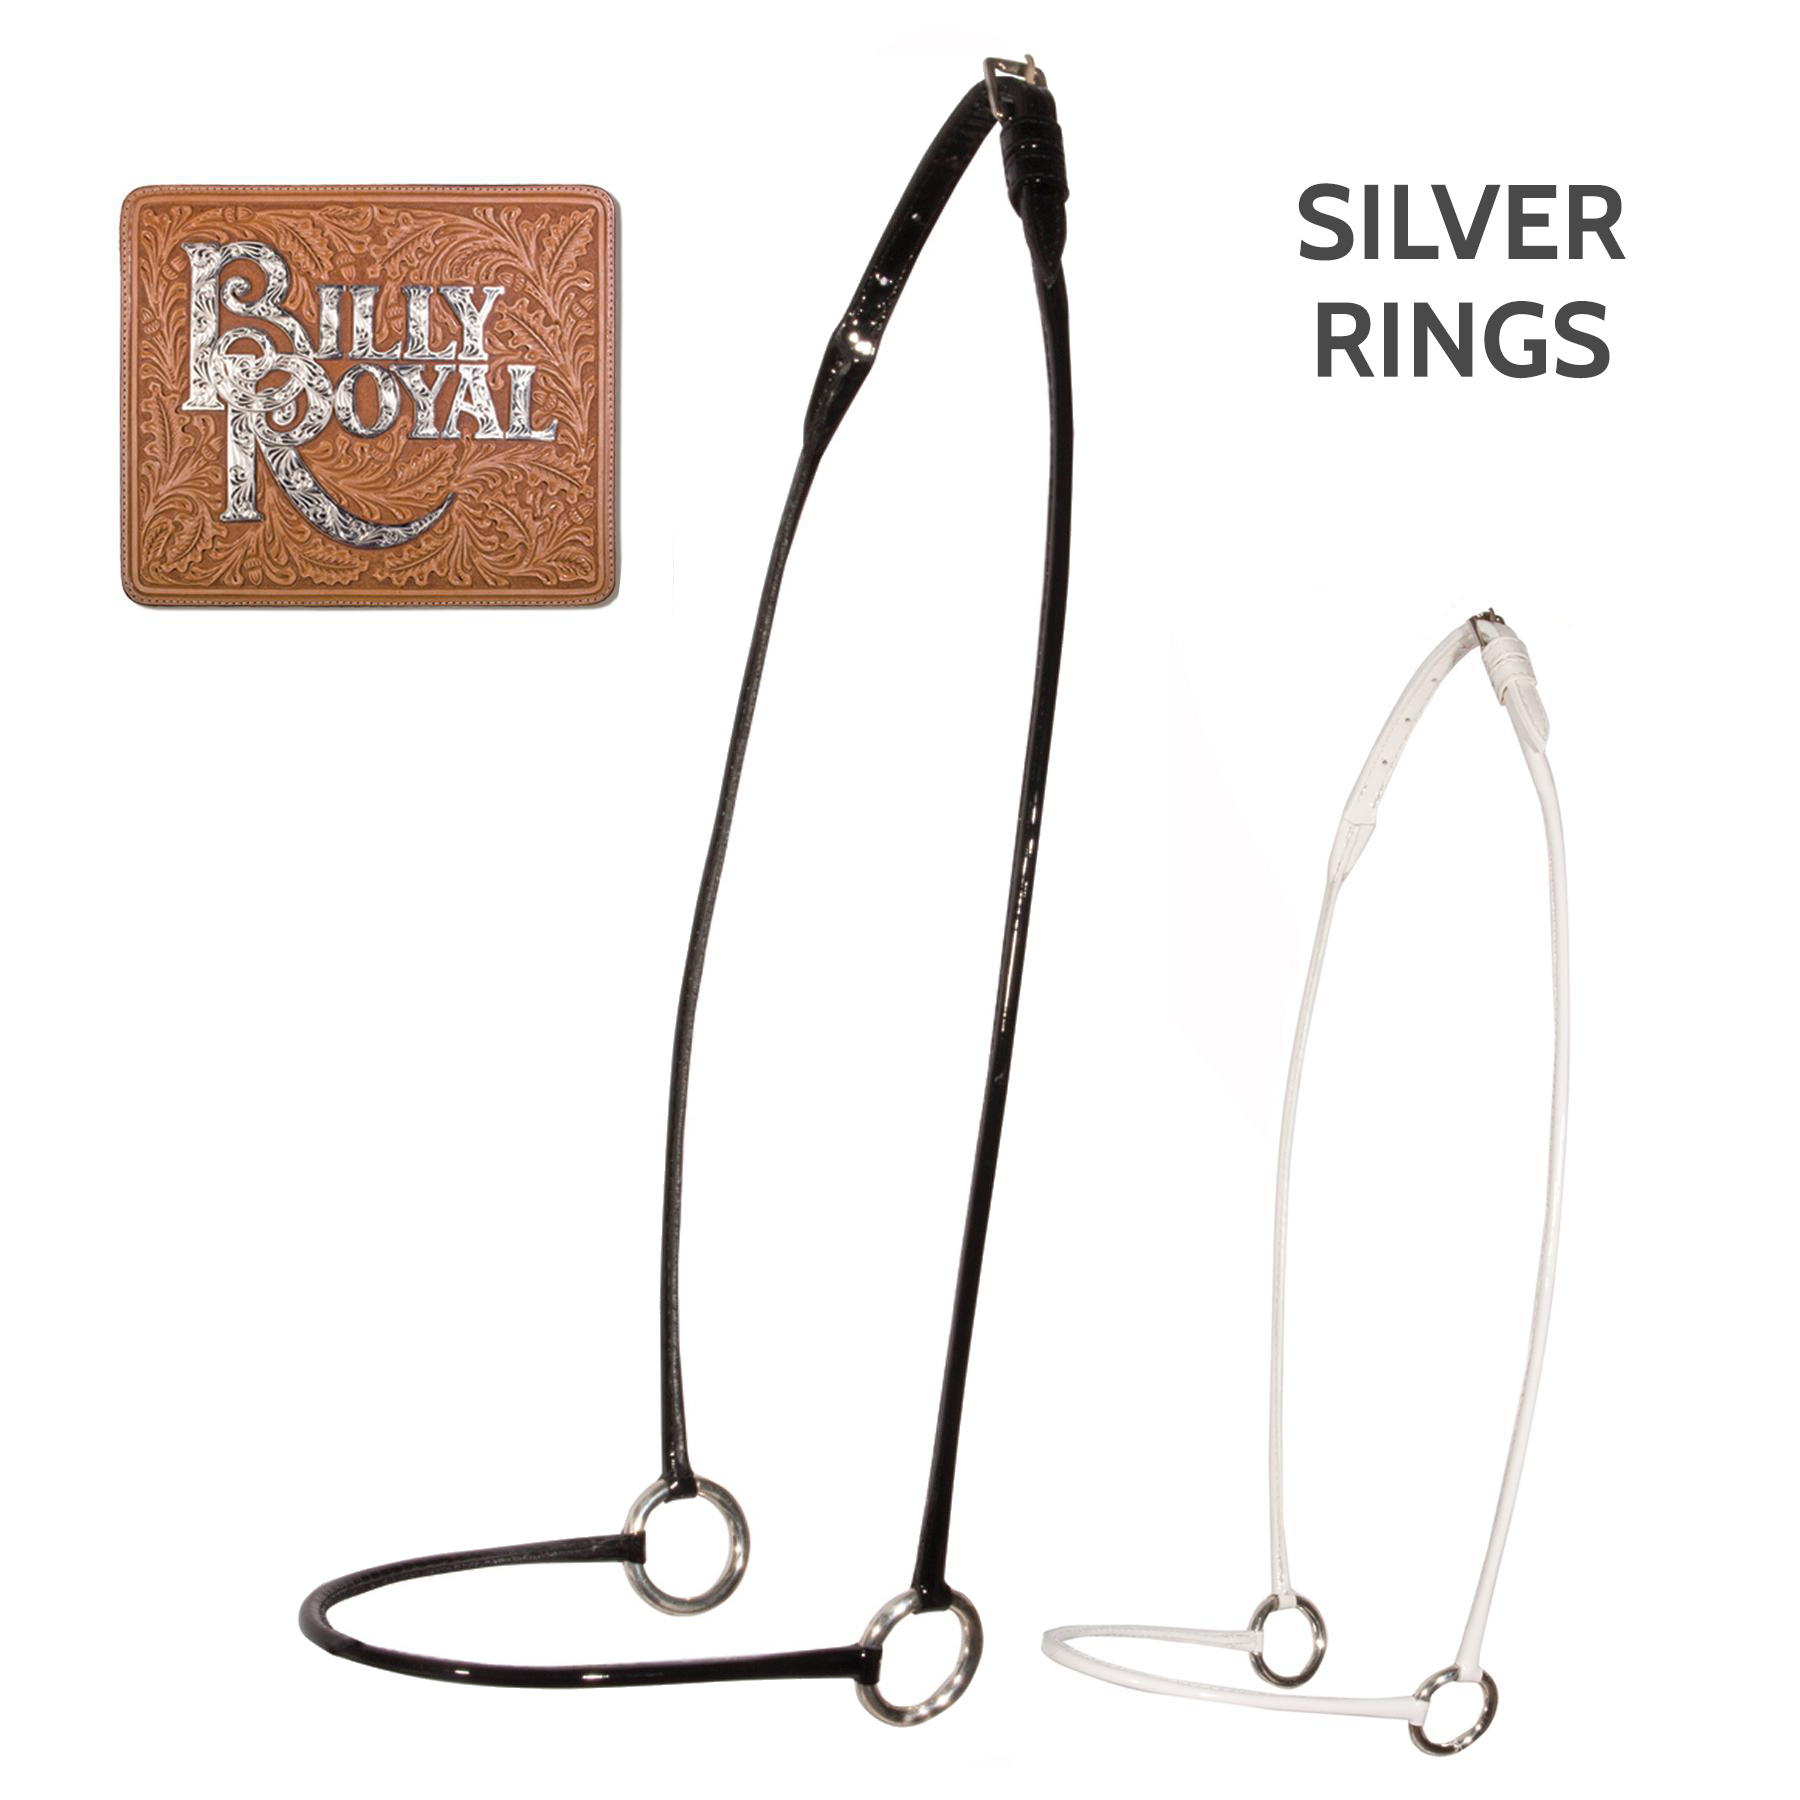 ai30877 Billy Royal® Original Classic Thread-silver rings